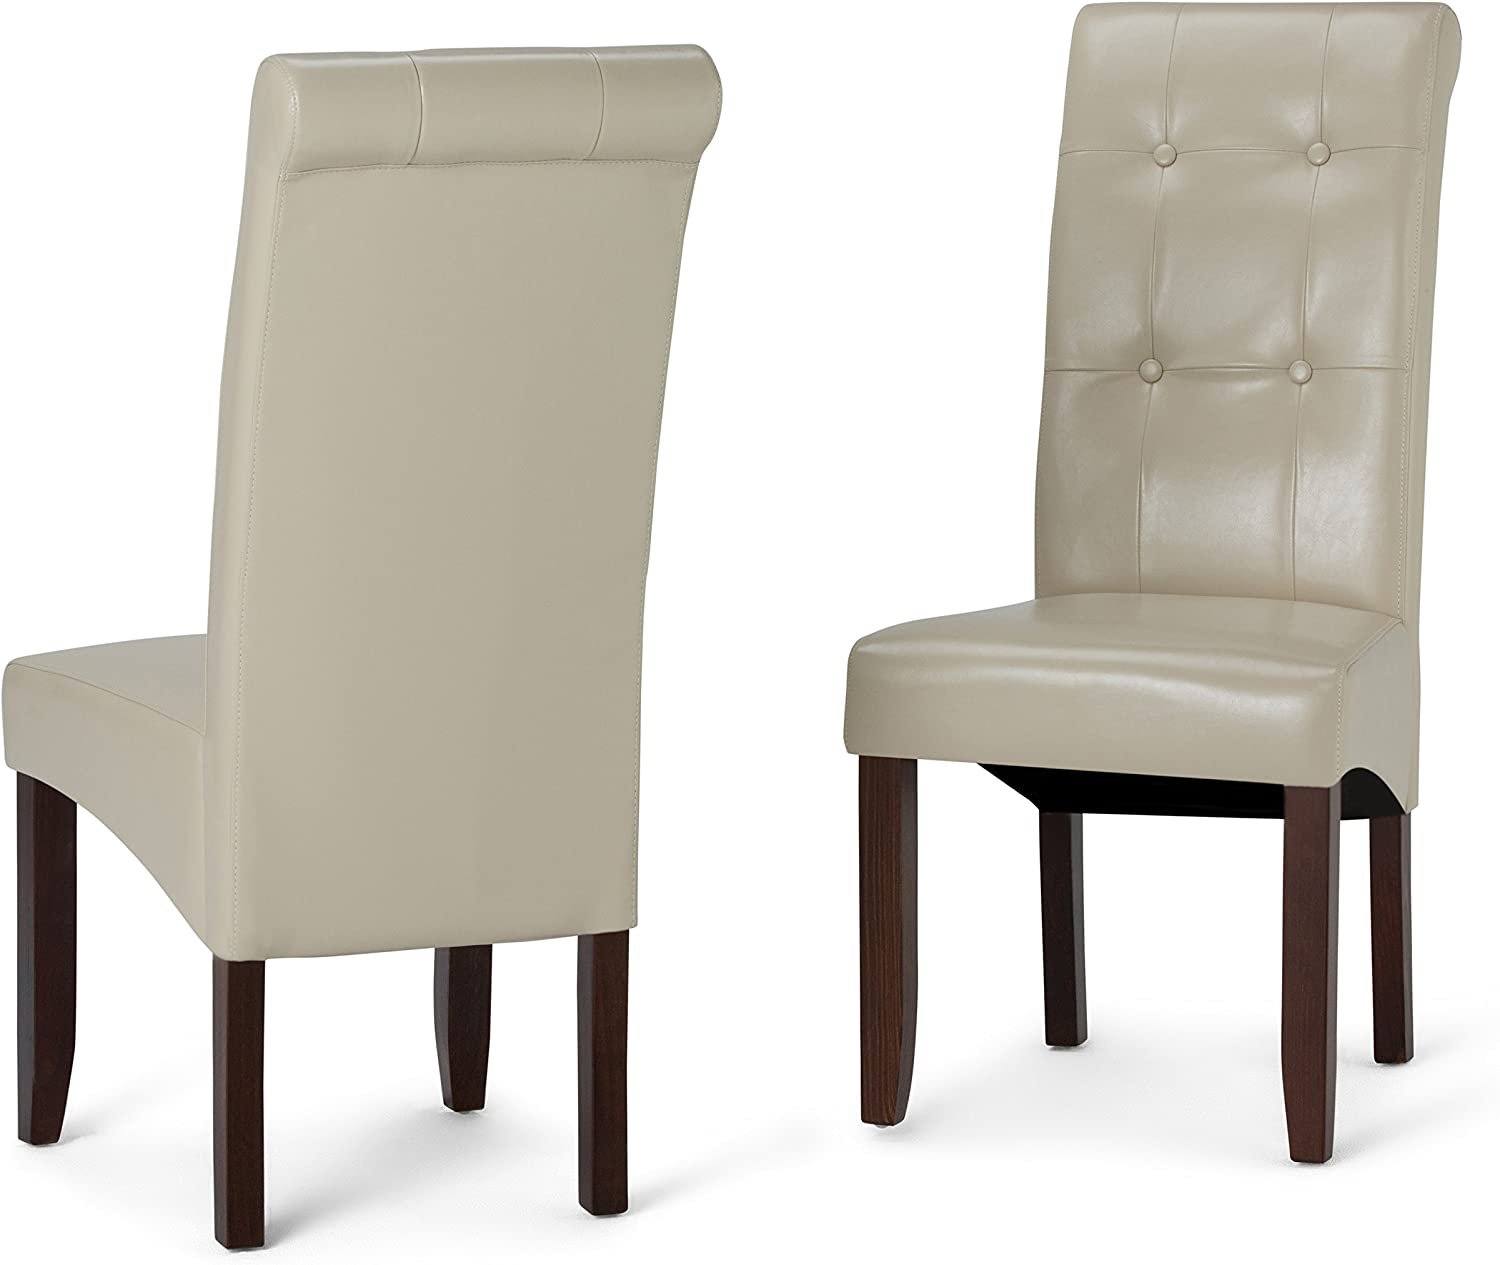 Simpli Home WS5109-4-CR Cosmopolitan Contemporary Deluxe Tufted Parson Chair (Set of 2) in Satin Cream Faux Leather